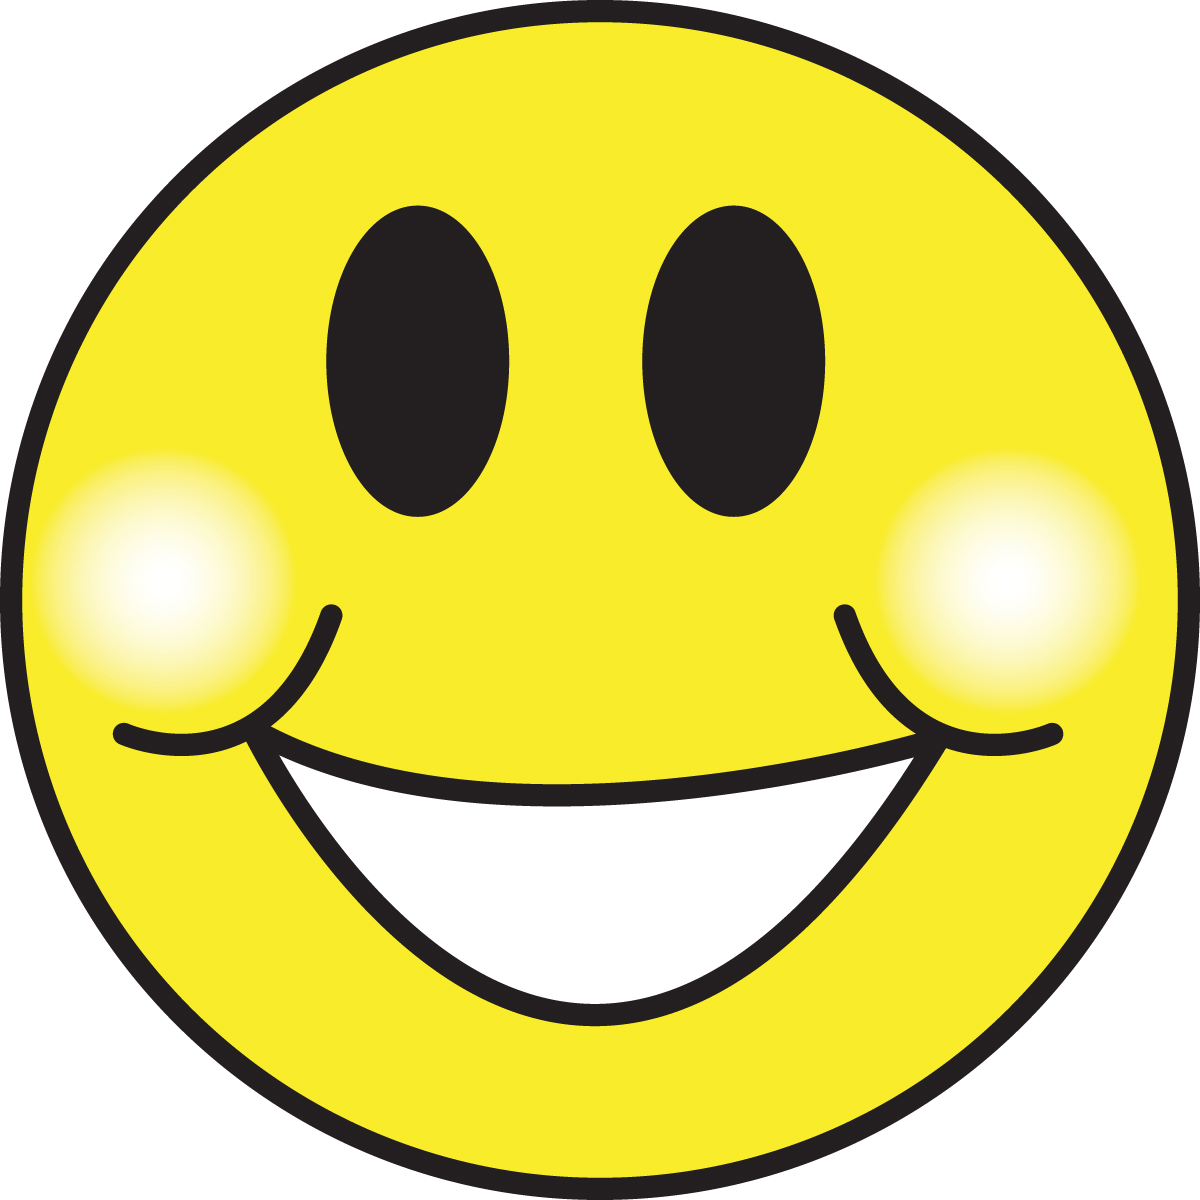 1200x1200 Smiley Face Clip Art Emotions Free Clipart Images 2